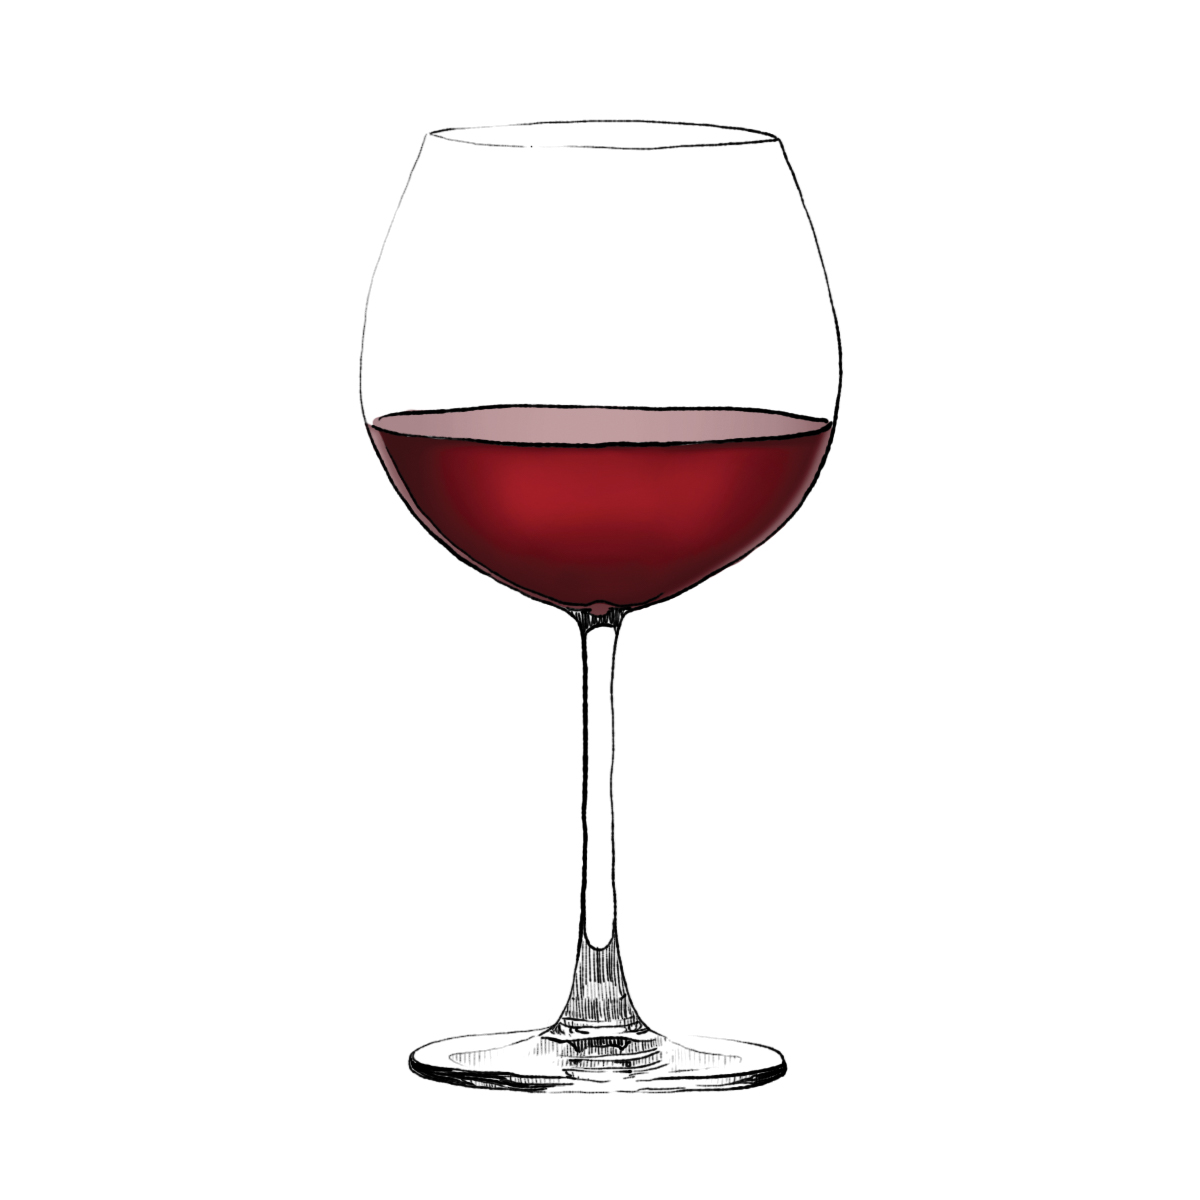 noli-soli-wine-glasses-red-3